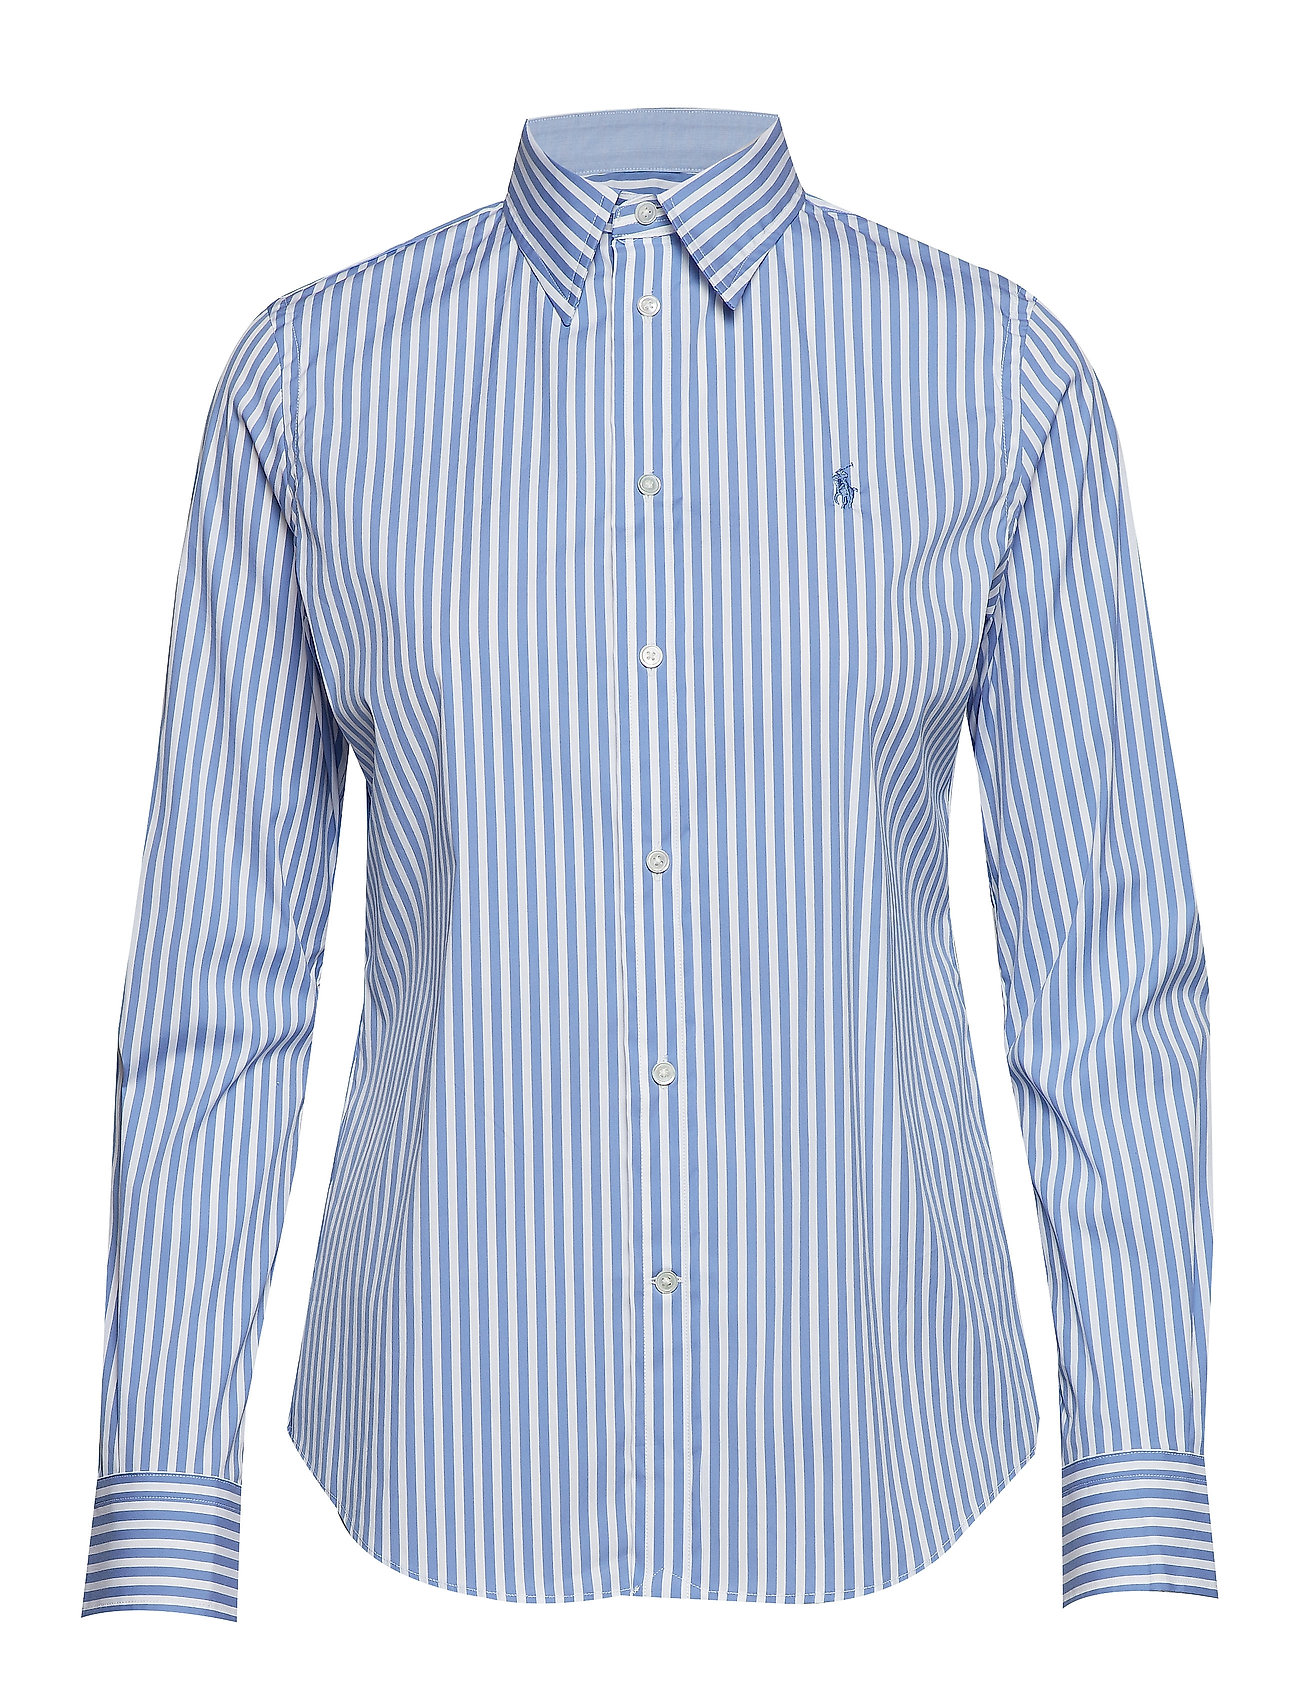 Polo Ralph Lauren Stretch Slim Fit Striped Shirt - 952G WHITE/DRESS